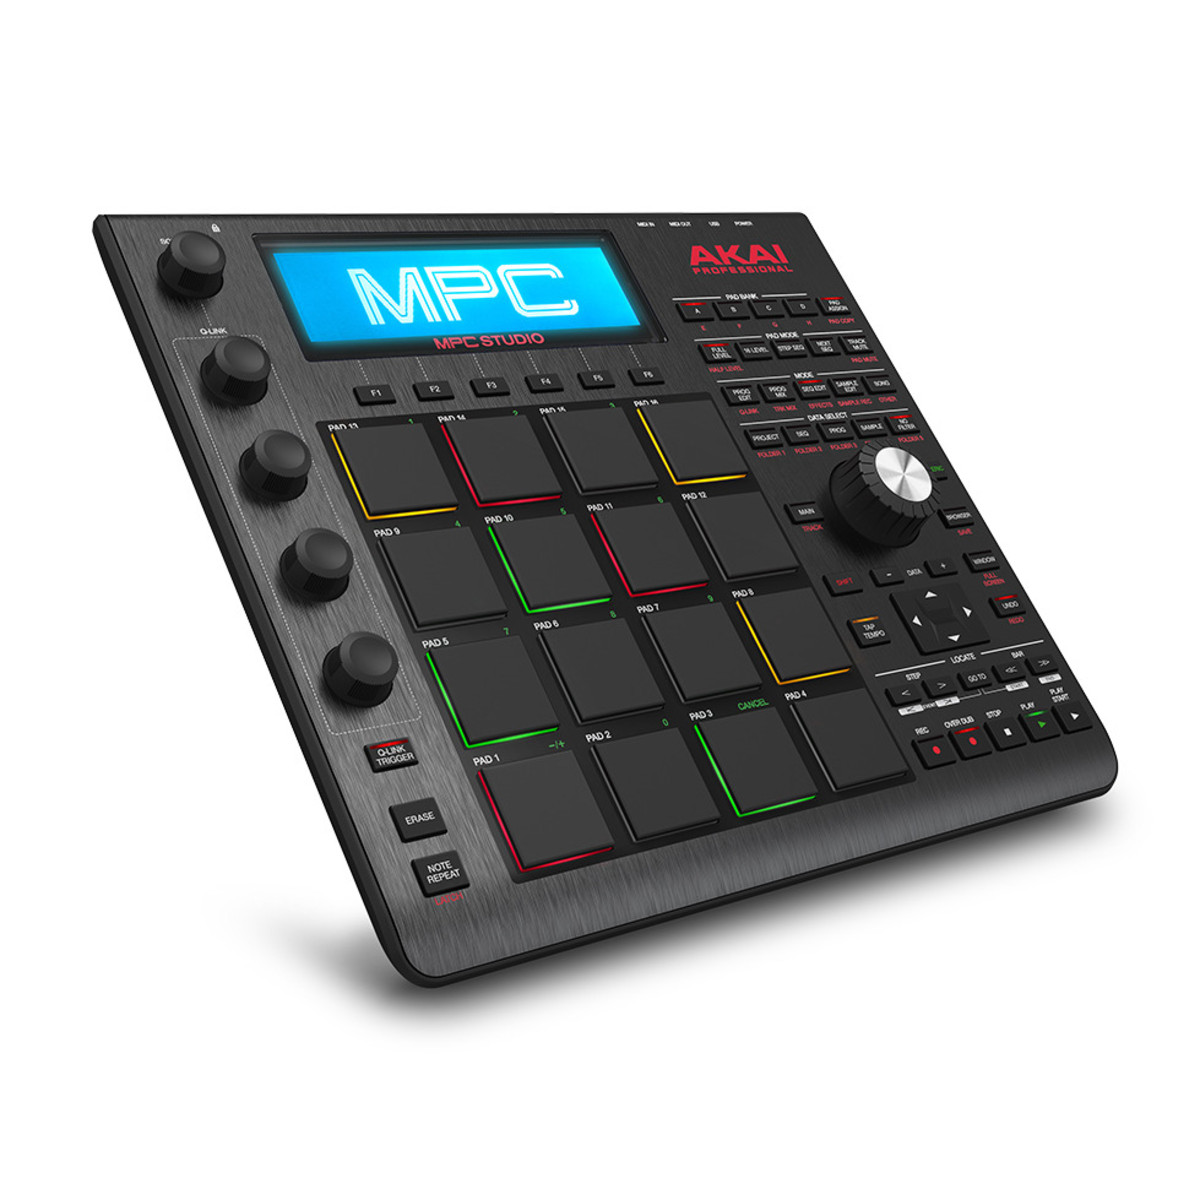 Image of Akai MPC Studio Music Production Controller Black